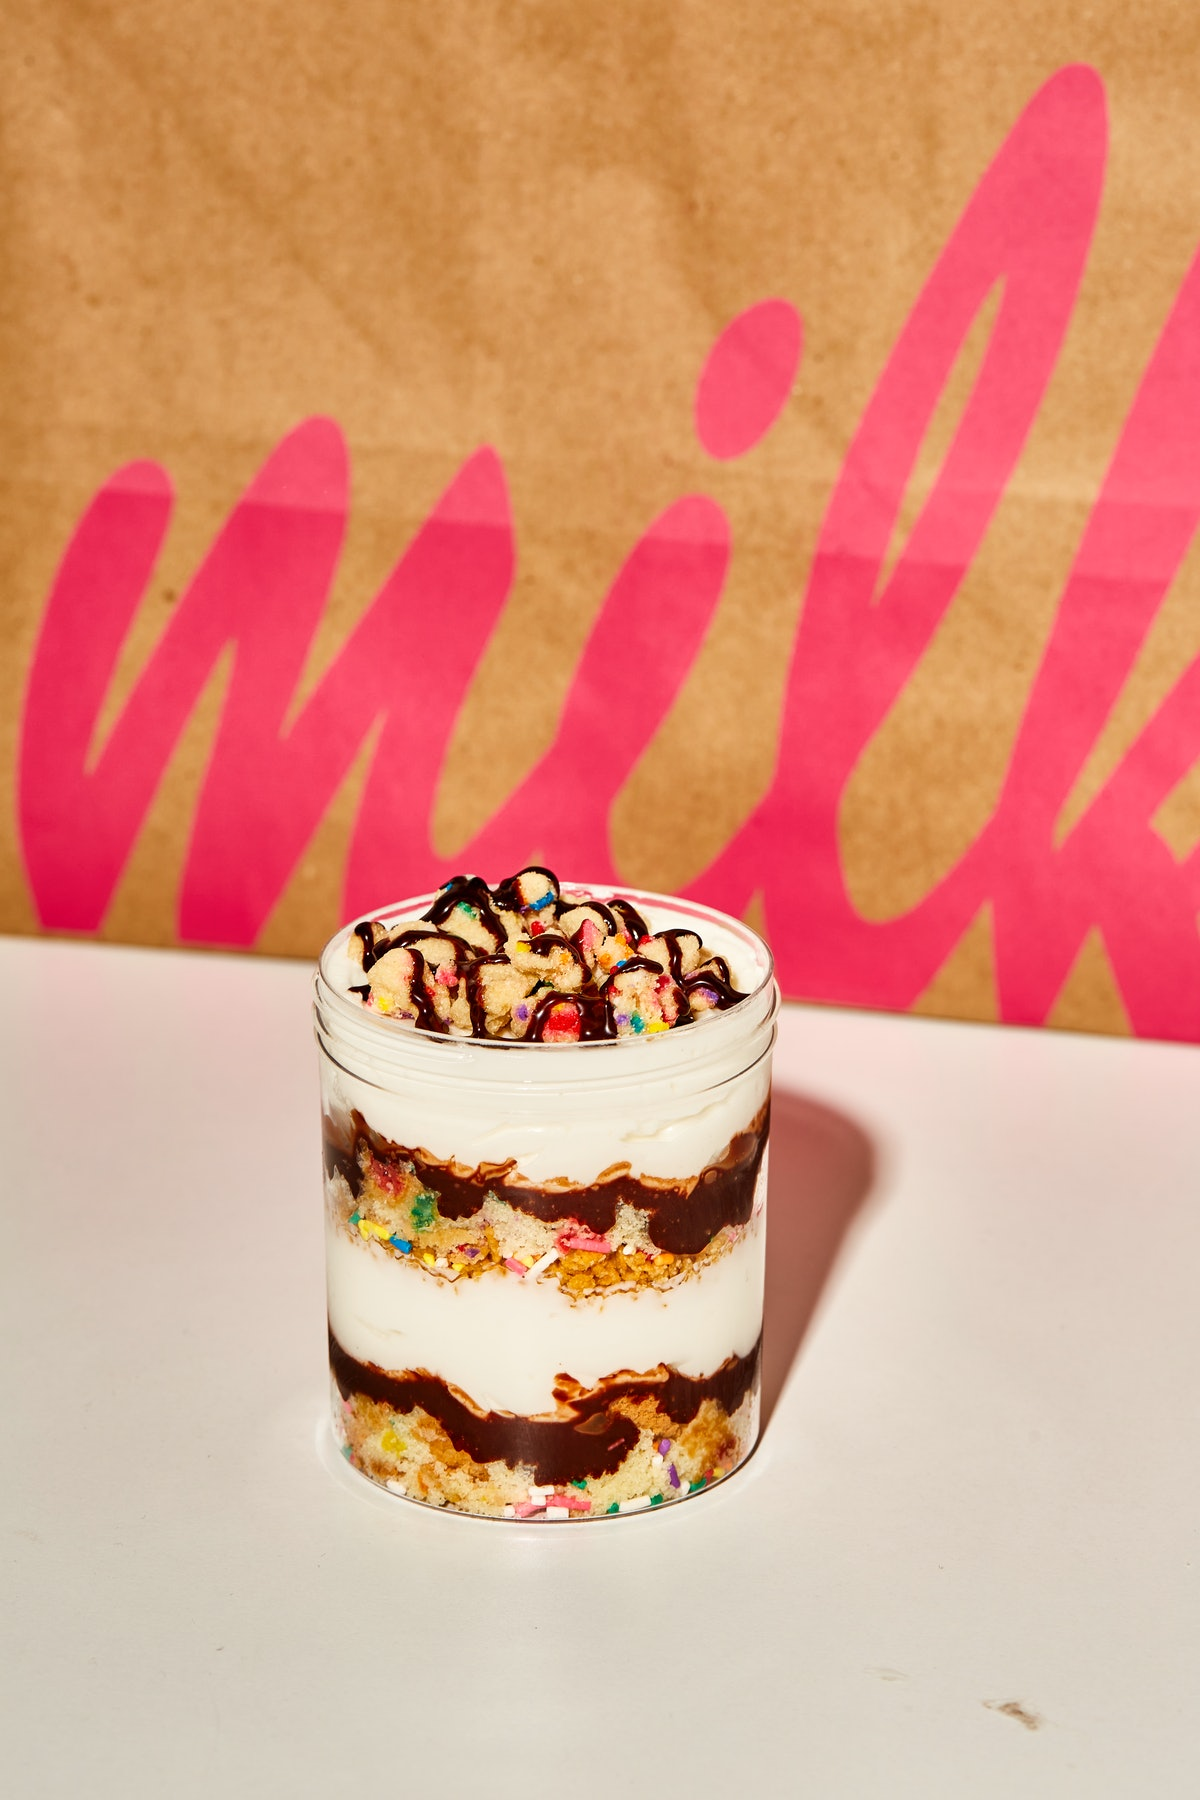 Here's what to know about Milk Bar's National Birthday Do-Over Month's treats and deals for July 202...